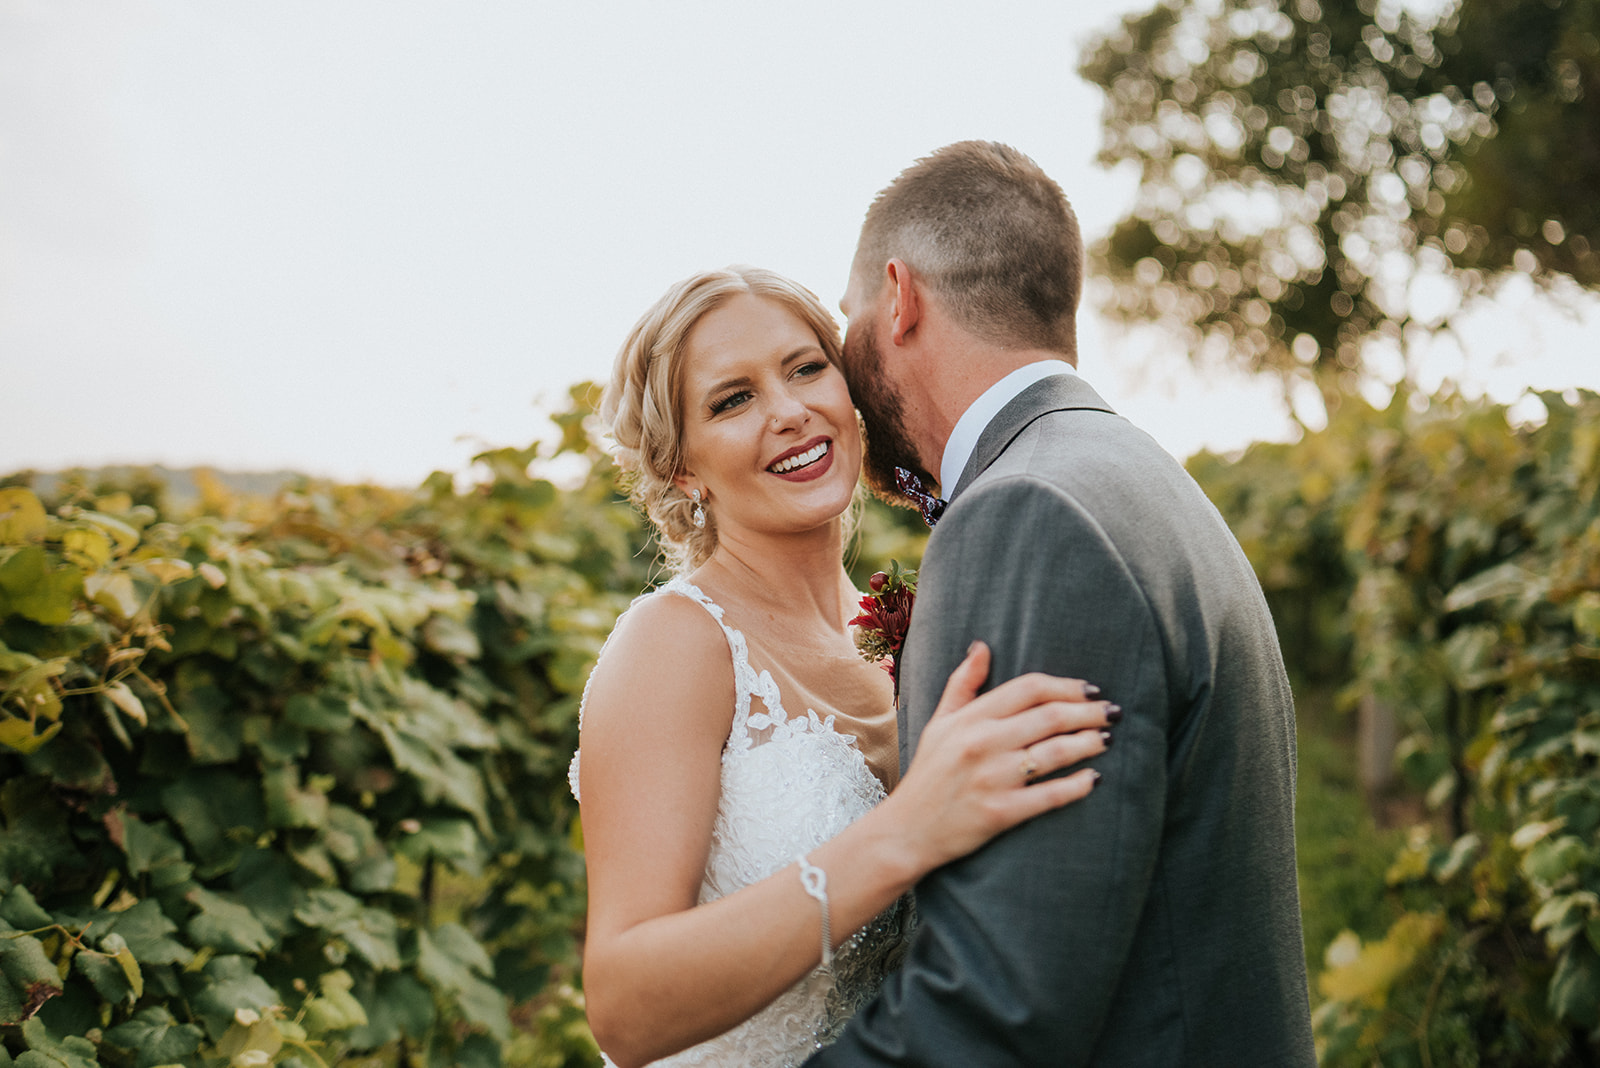 overthevineswisconsinwedding_0898.jpg